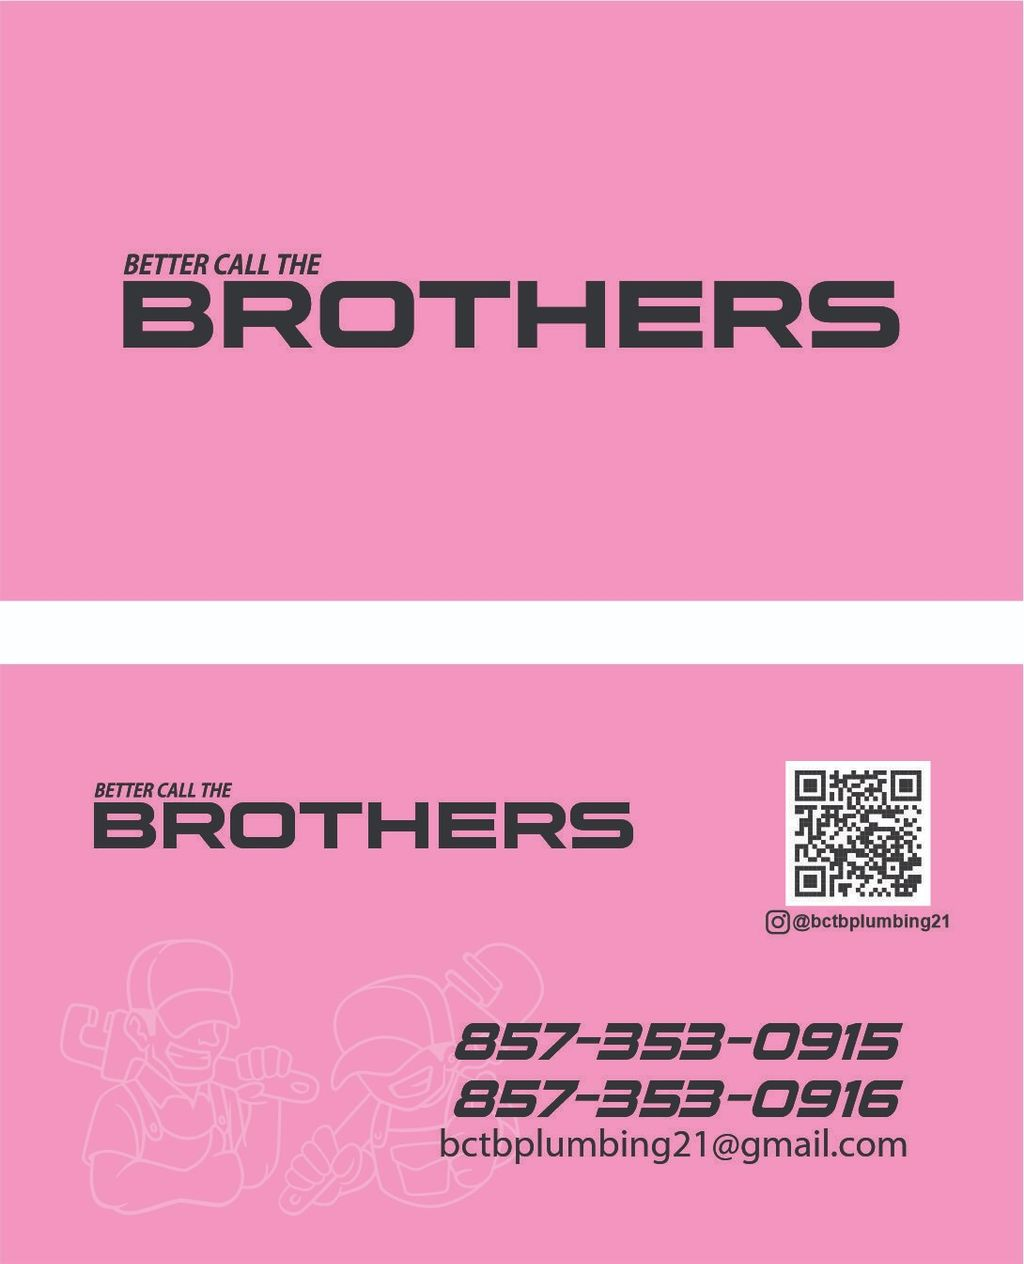 BetterCalltheBrothers